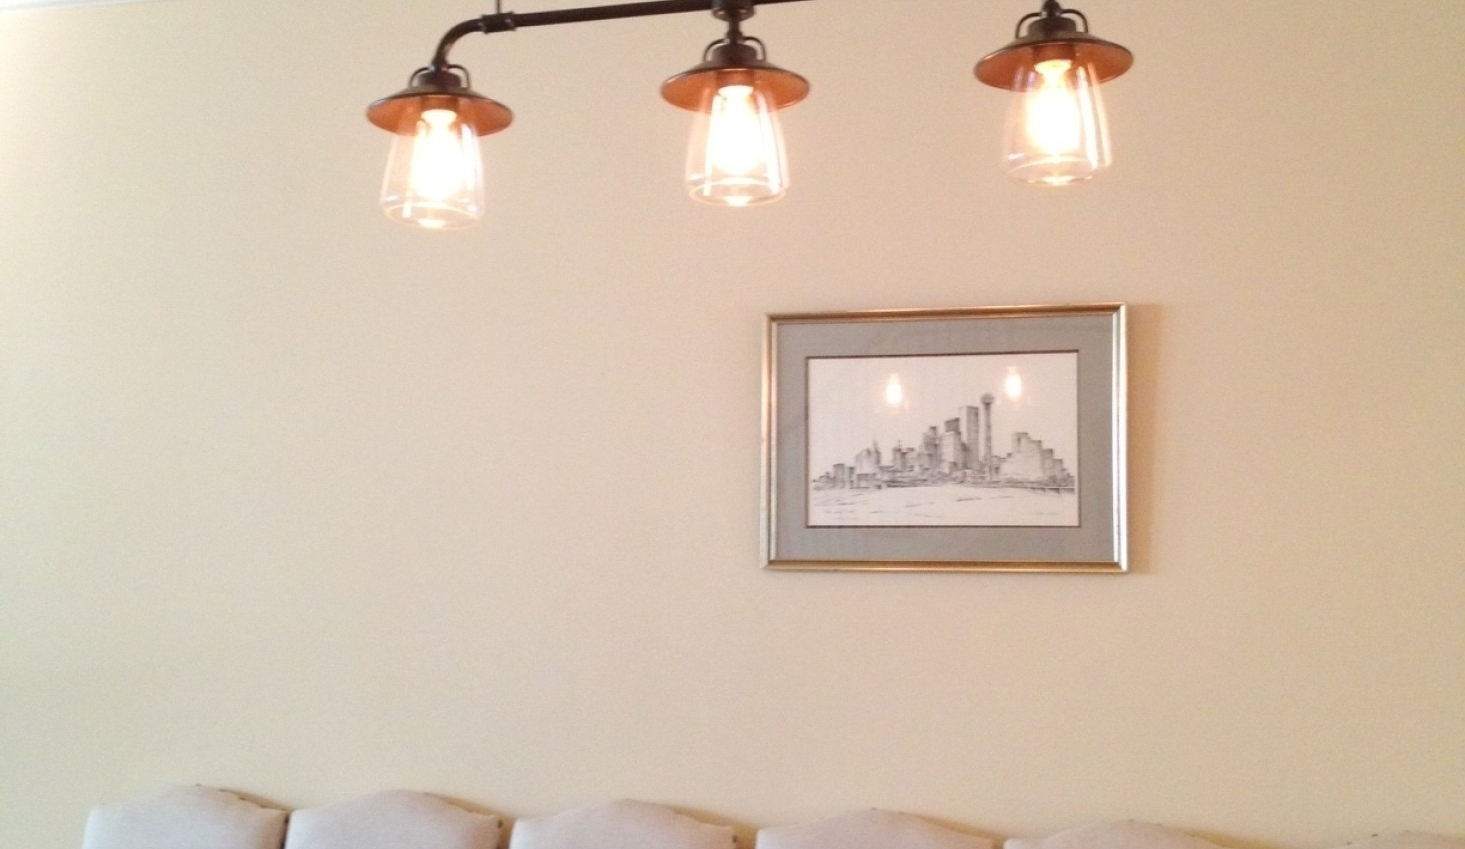 Wall Mounted Bathroom Chandeliers for Most Current Light : Awesome Wall Mounted Bathroom Chandeliers White Flushmount